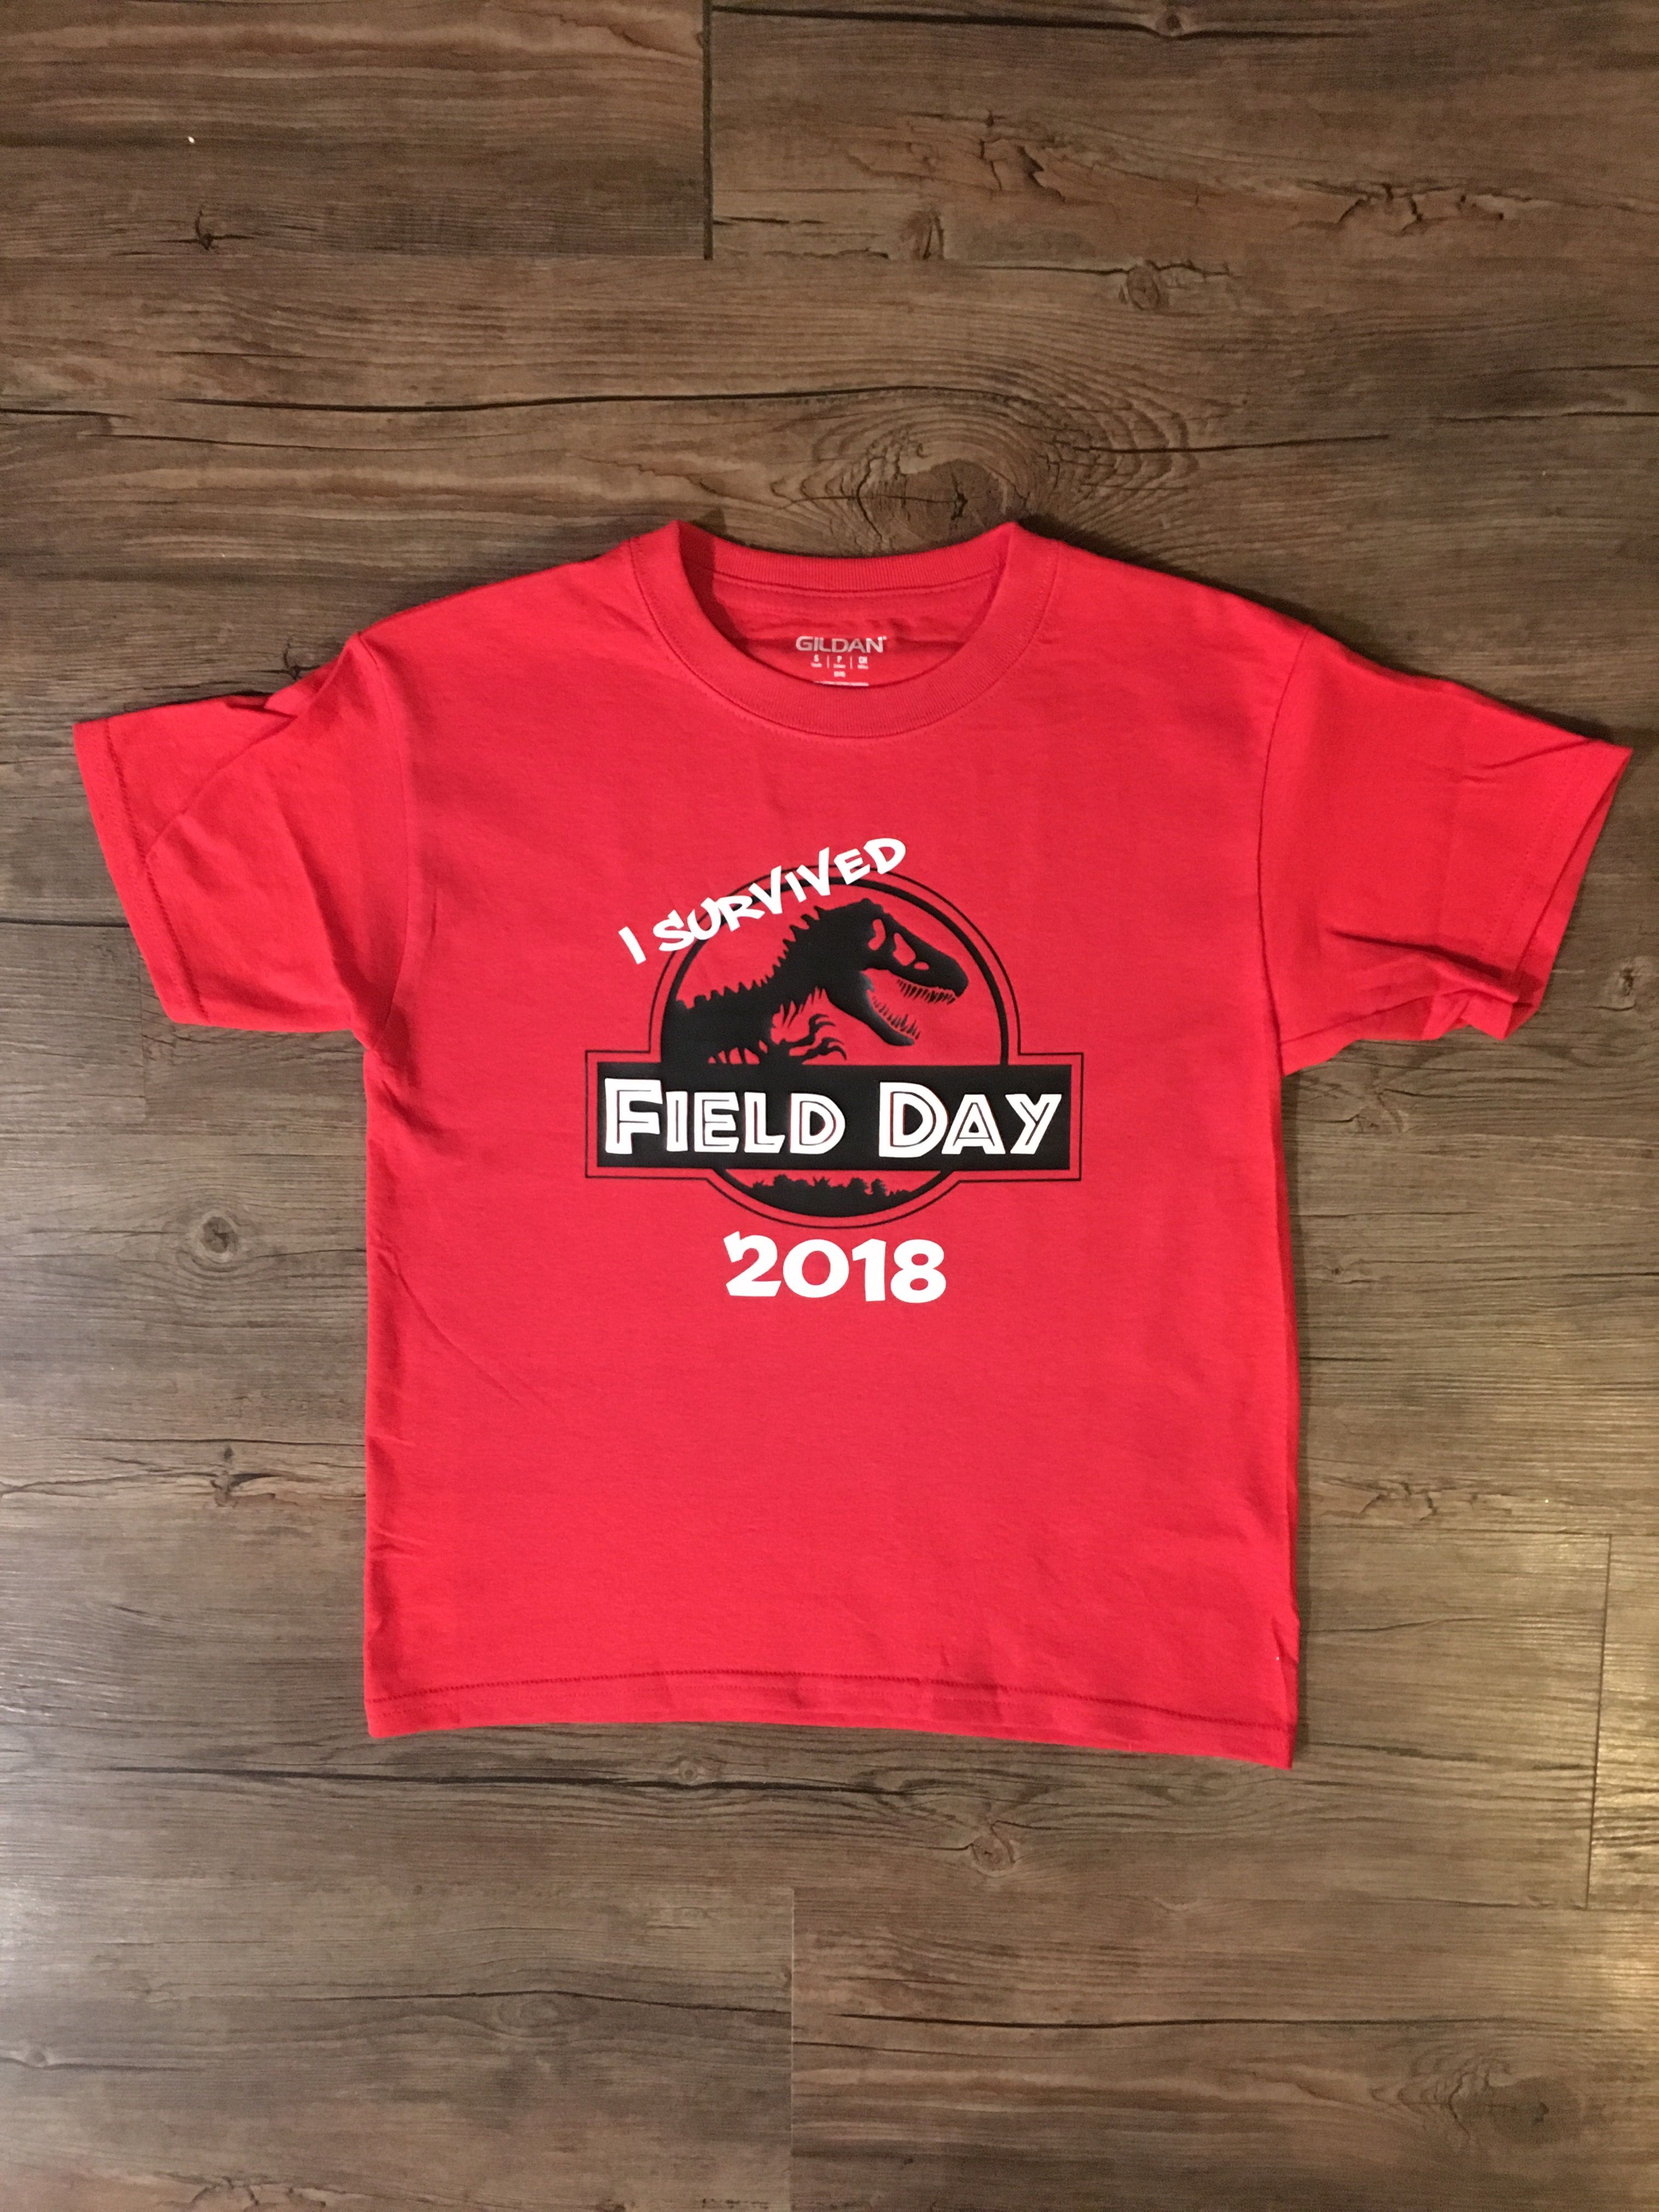 50f0d52d0ac21 Jurassic park field day shirt! | Styled For Fun | Field day, T shirt ...